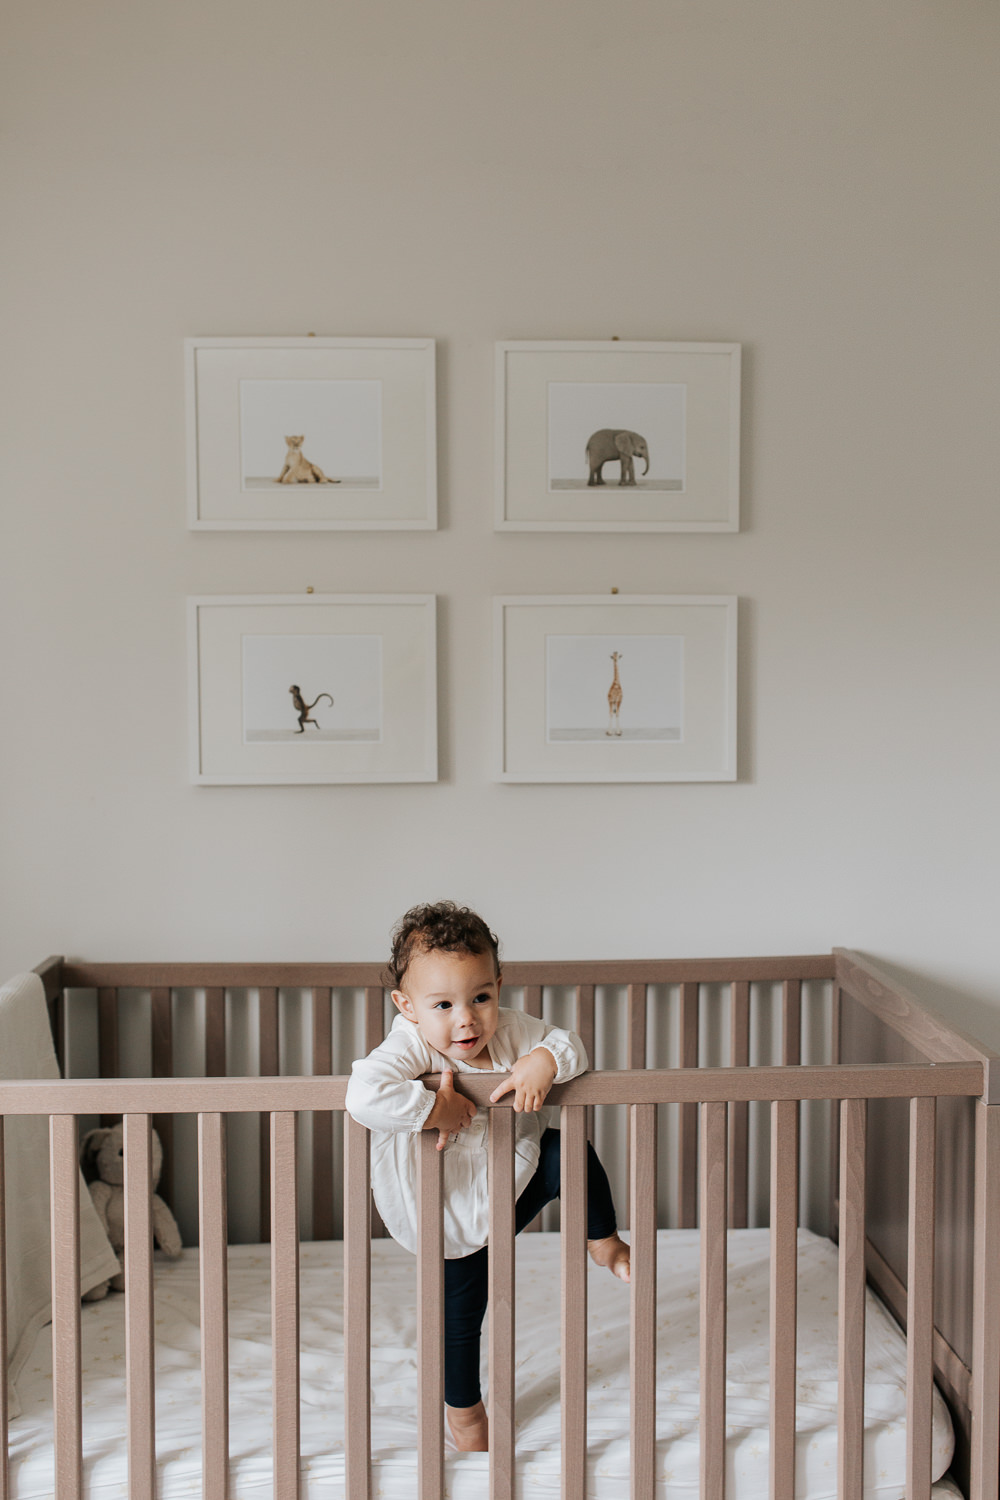 2 year old girl with dark curly hair and brown eyes in cream top and dark pants trying to climb out of crib in neutral nursery with animal prints on wall - GTA Lifestyle Photos